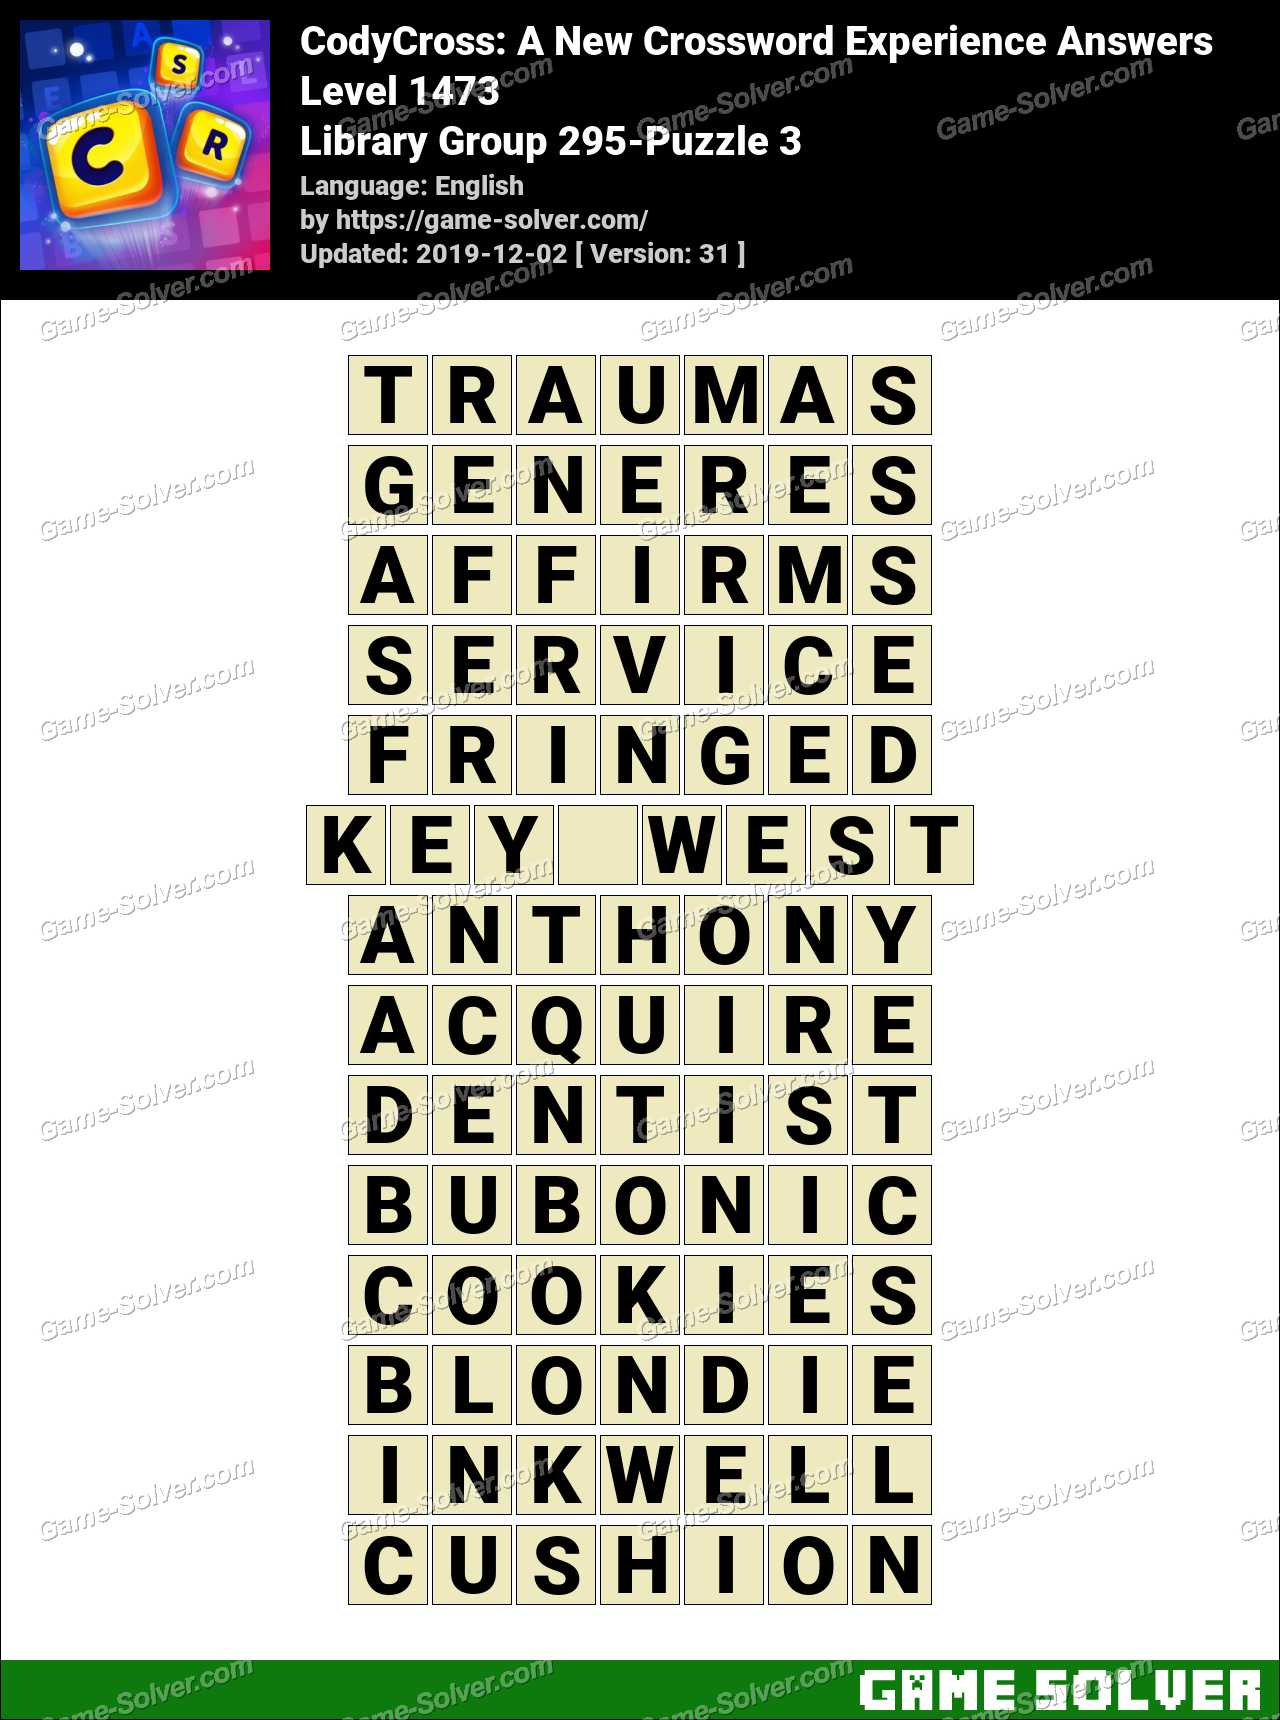 CodyCross Library Group 295-Puzzle 3 Answers